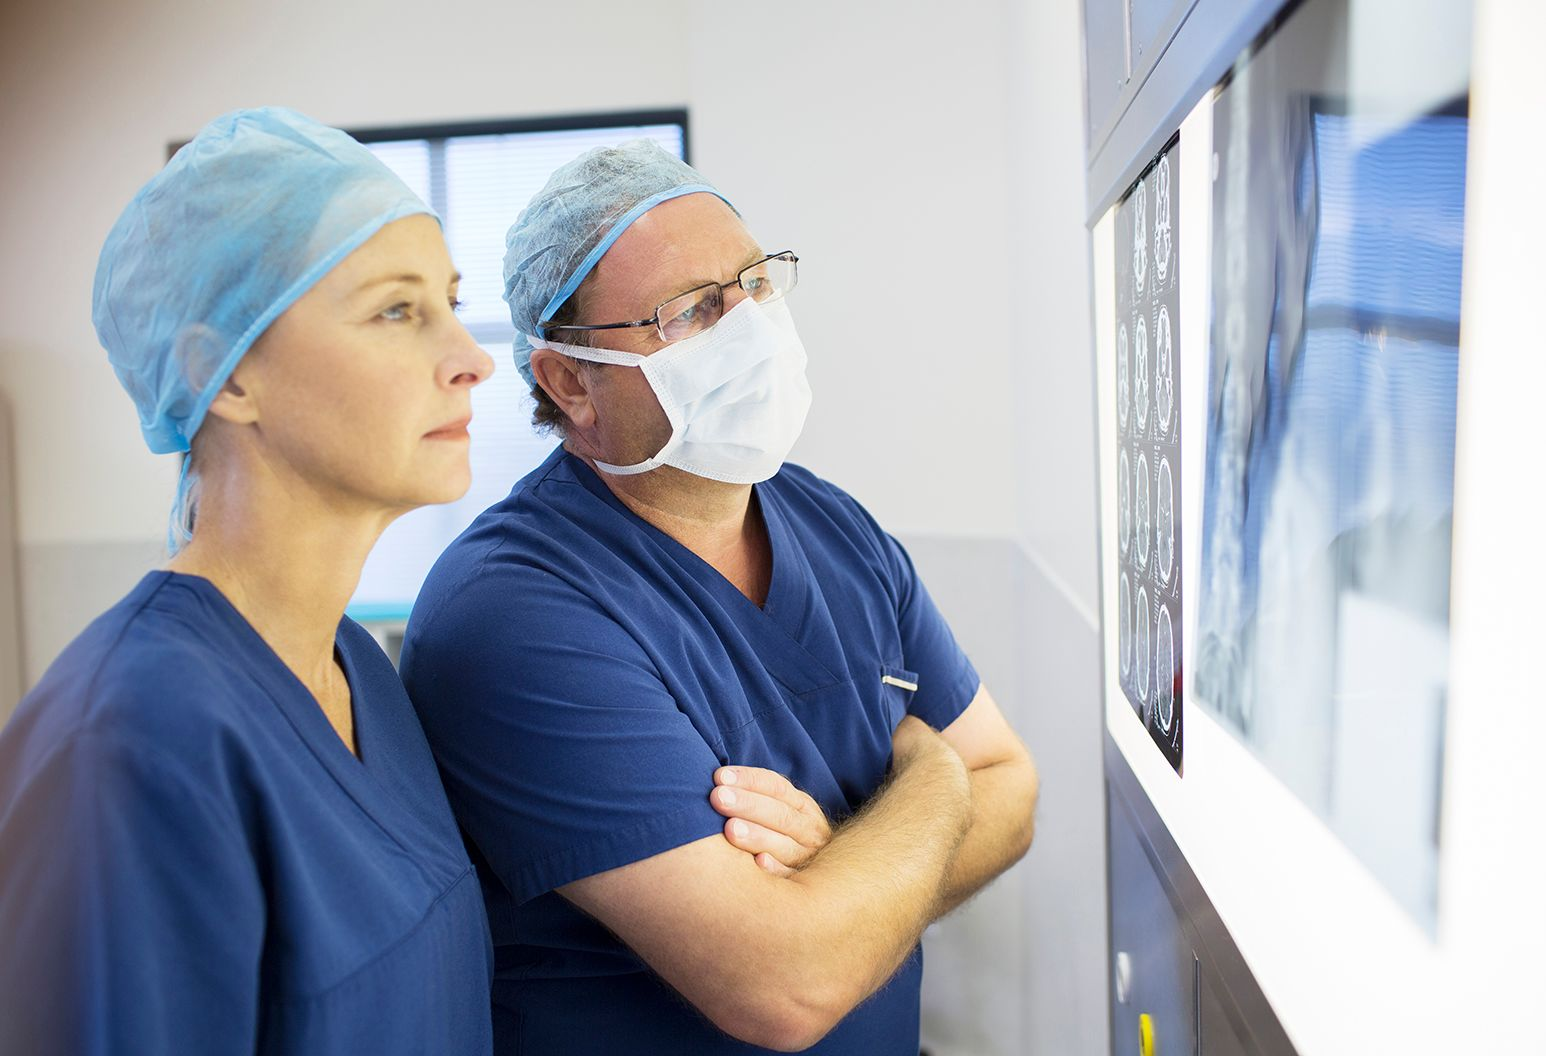 Two surgeons look at x-ray